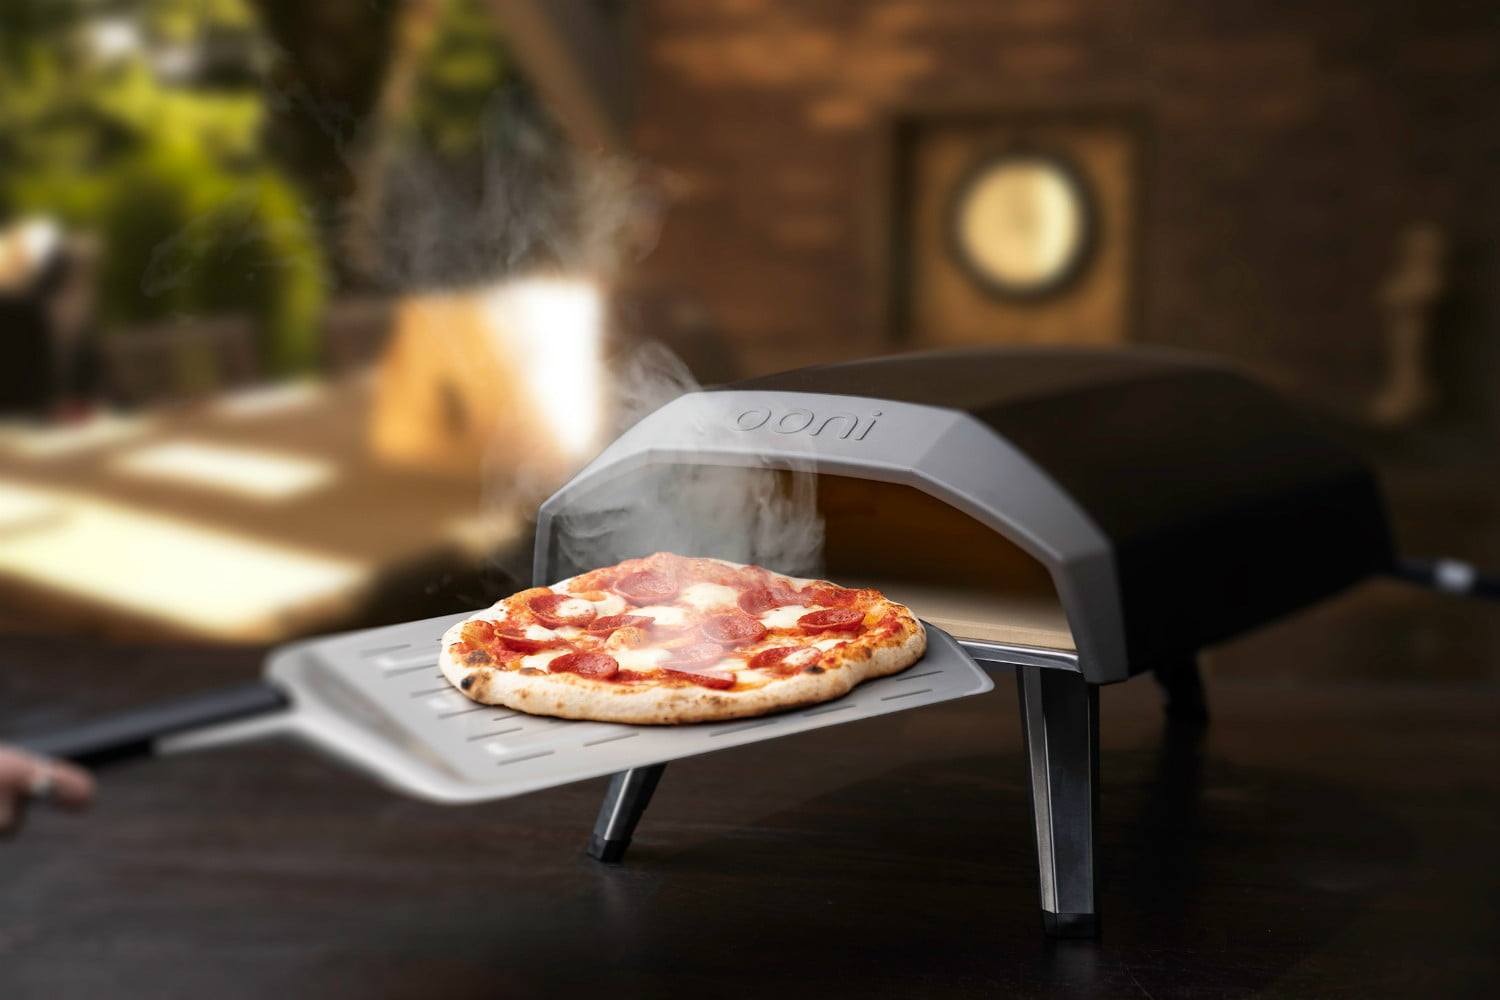 This oven promises a perfect Neopolitan-style pizza in 60 seconds